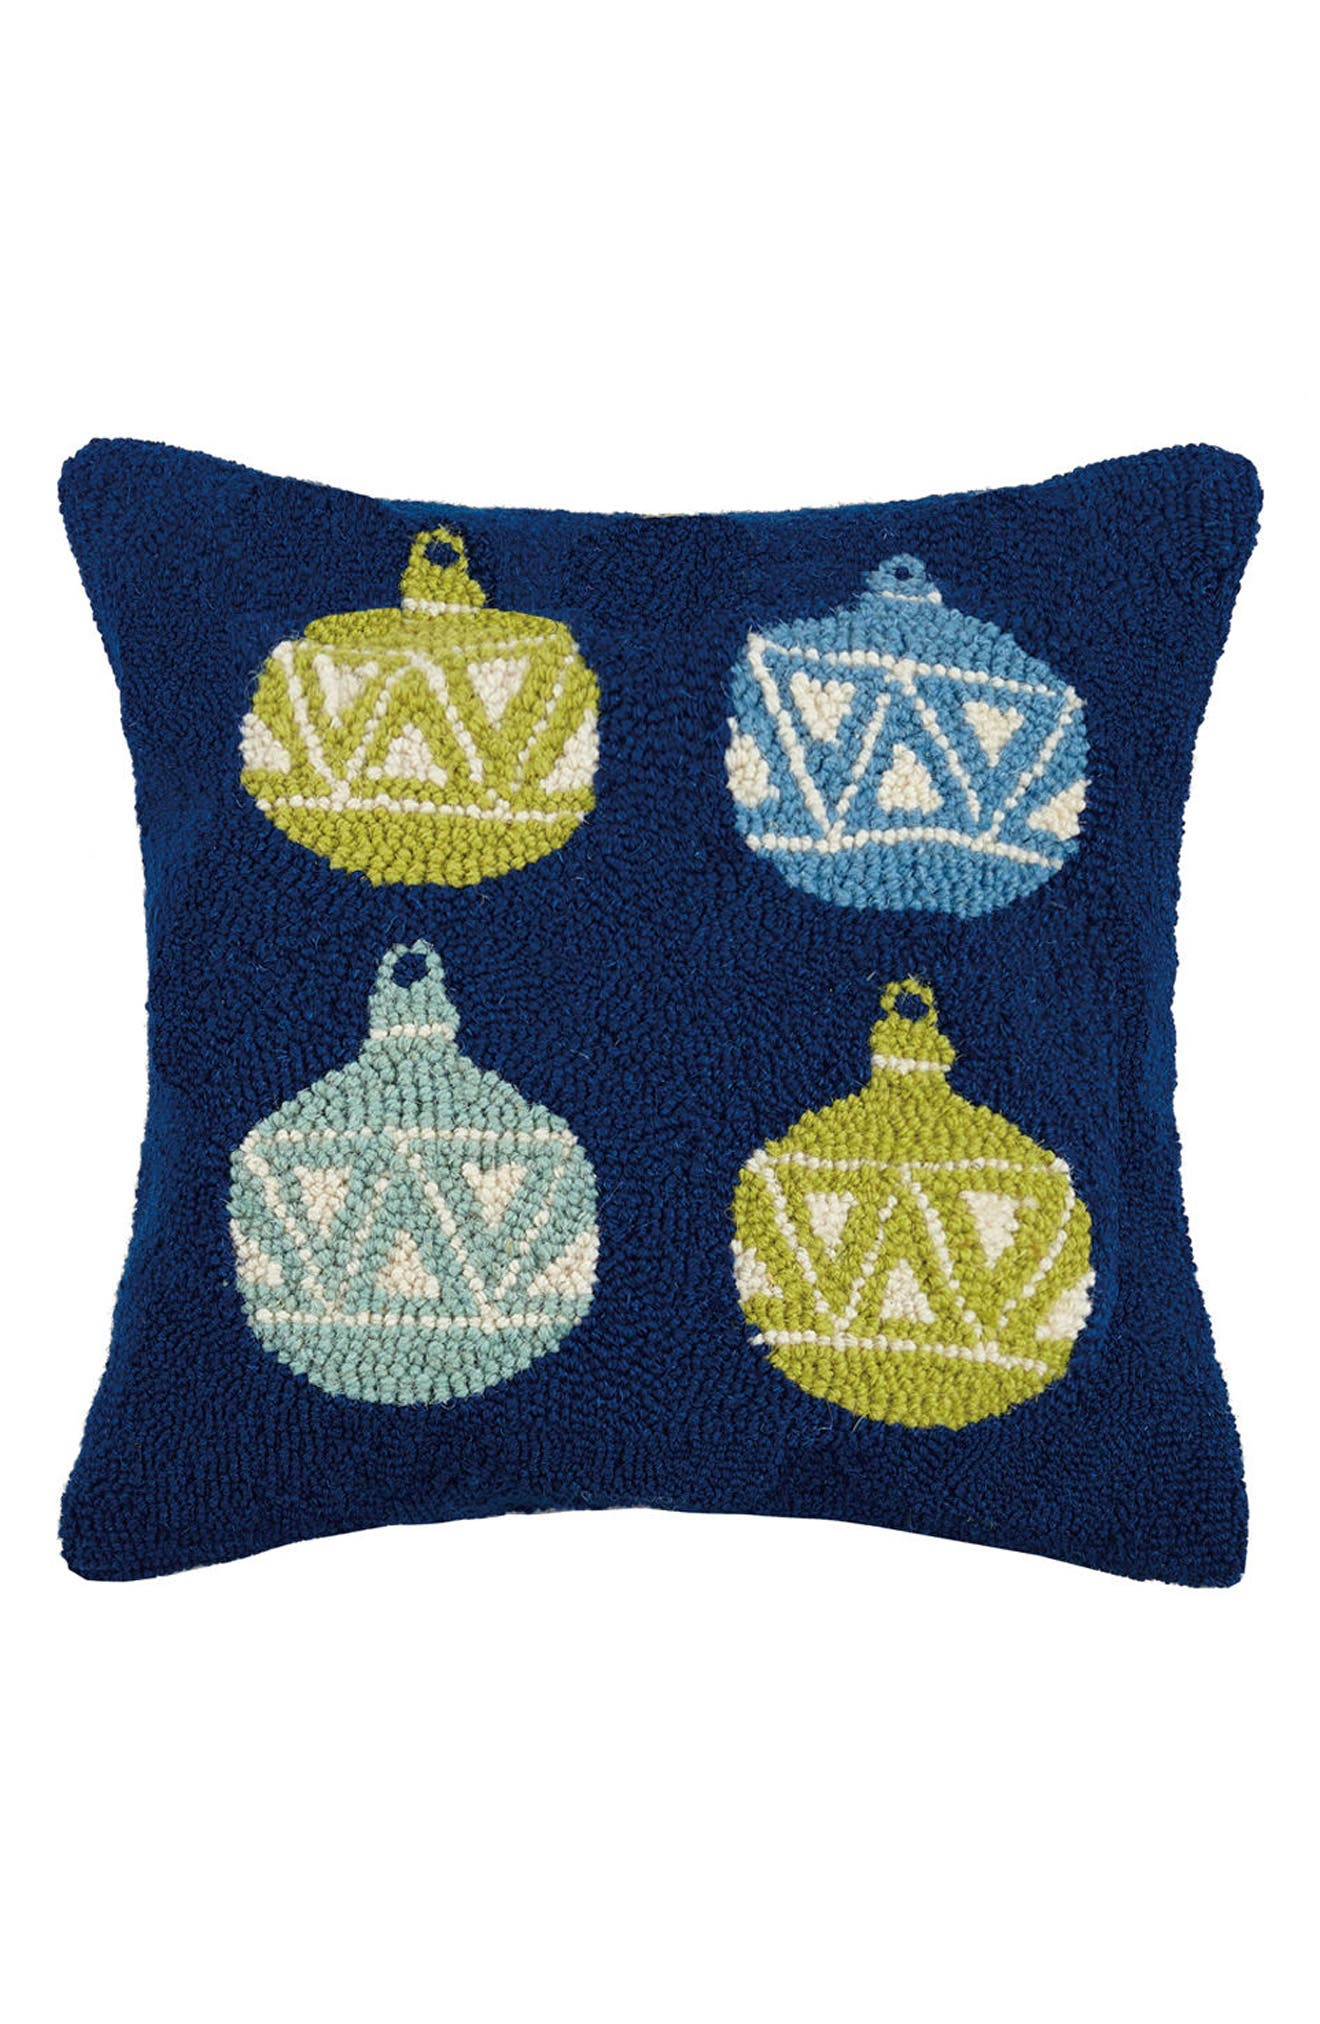 Ornaments Hooked Accent Pillow,                         Main,                         color, Blue